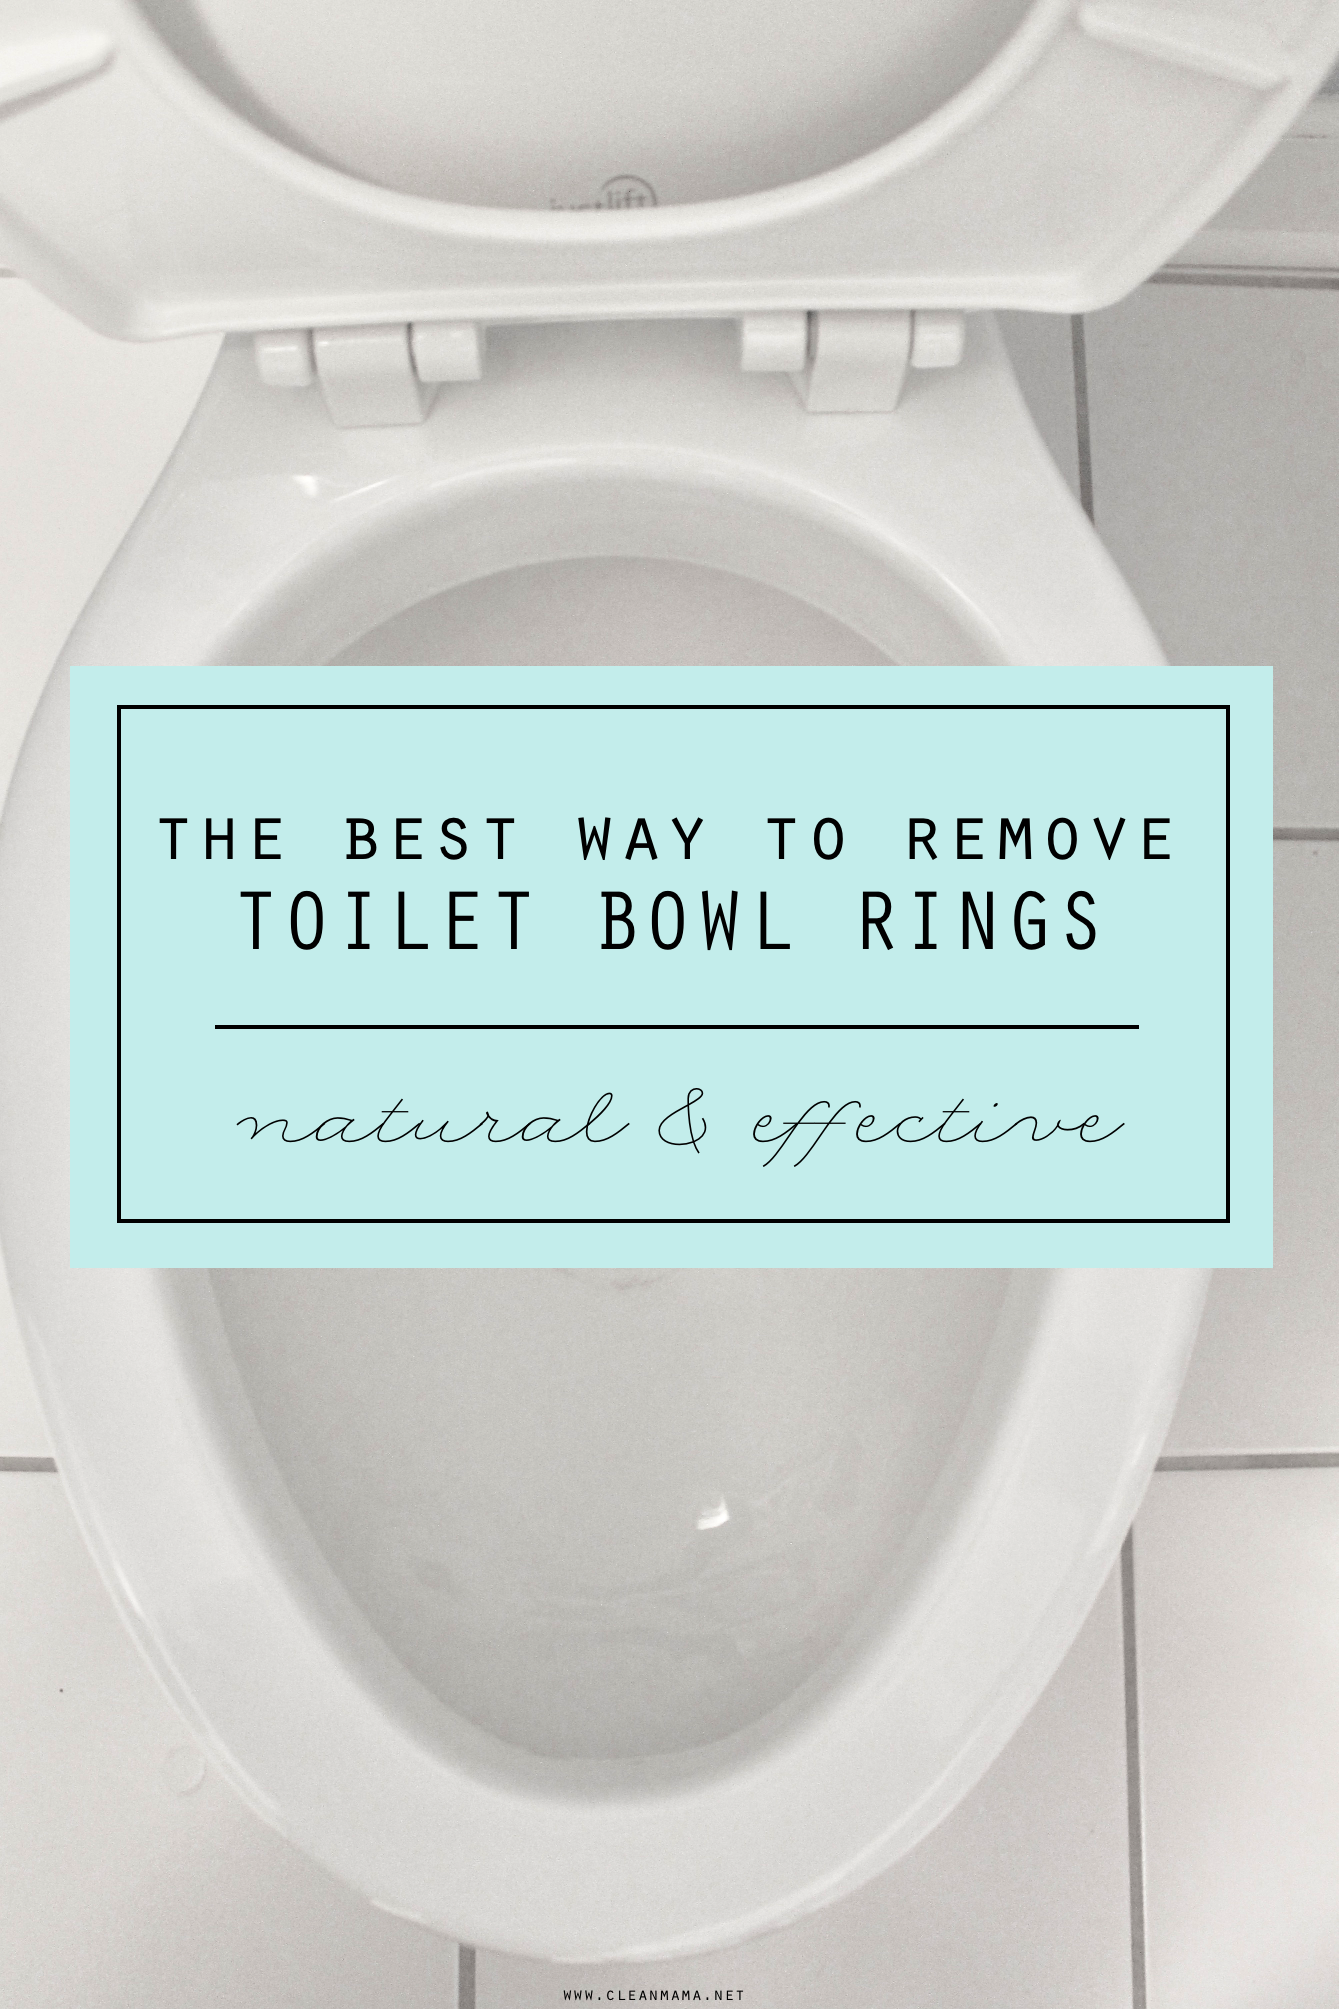 Beautiful Home Depot Wax Rings Toilets Covid Decor